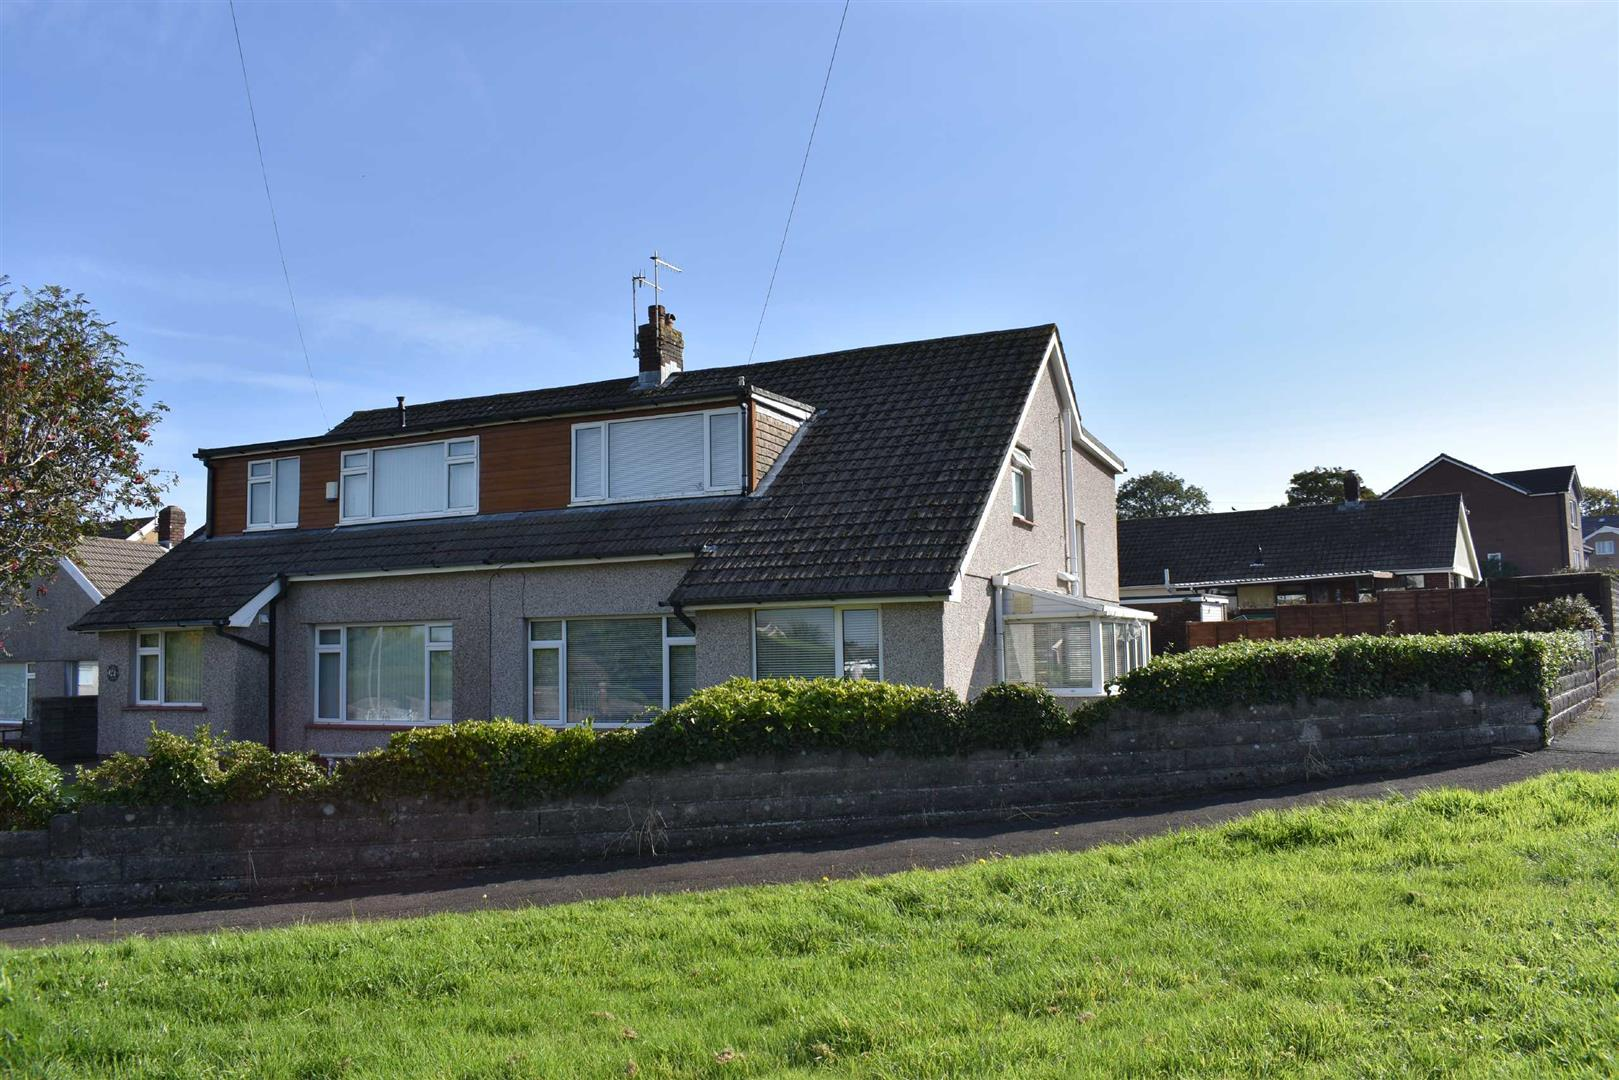 Weig Fach Lane, Fforestfach, Swansea, SA5 5AY